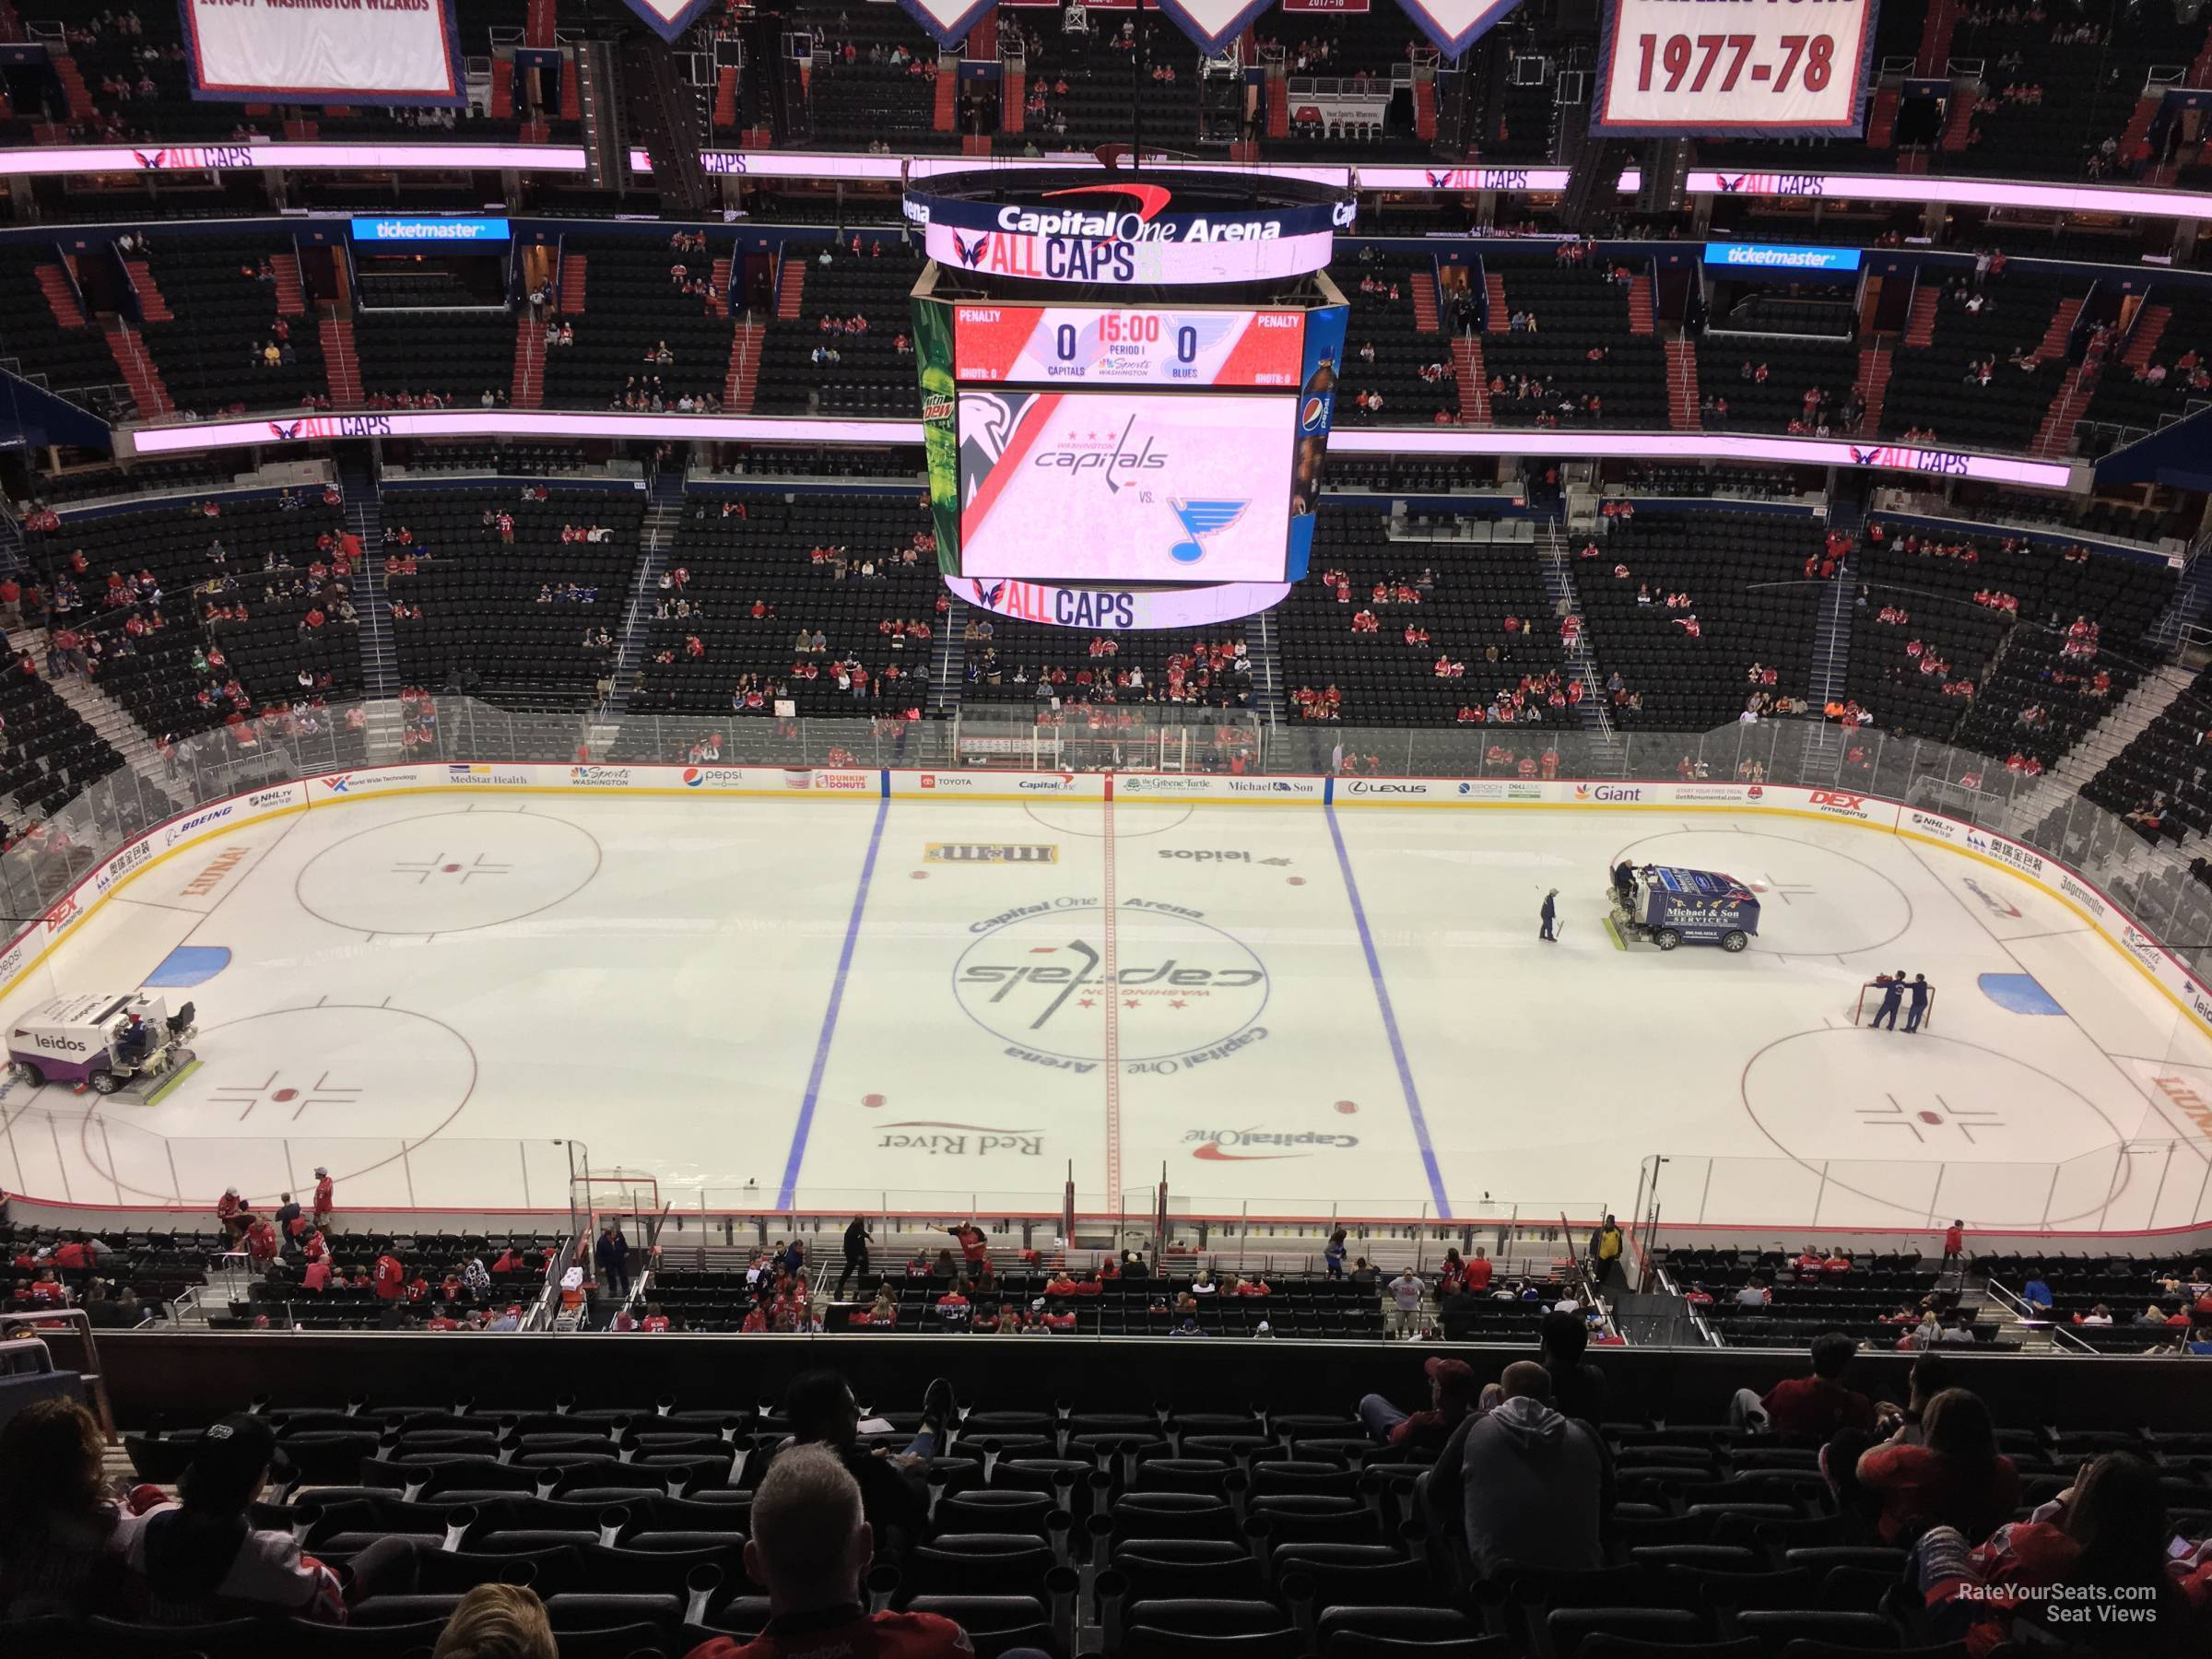 Washington Capitals Seat View for Capital One Arena Section 400, Row M